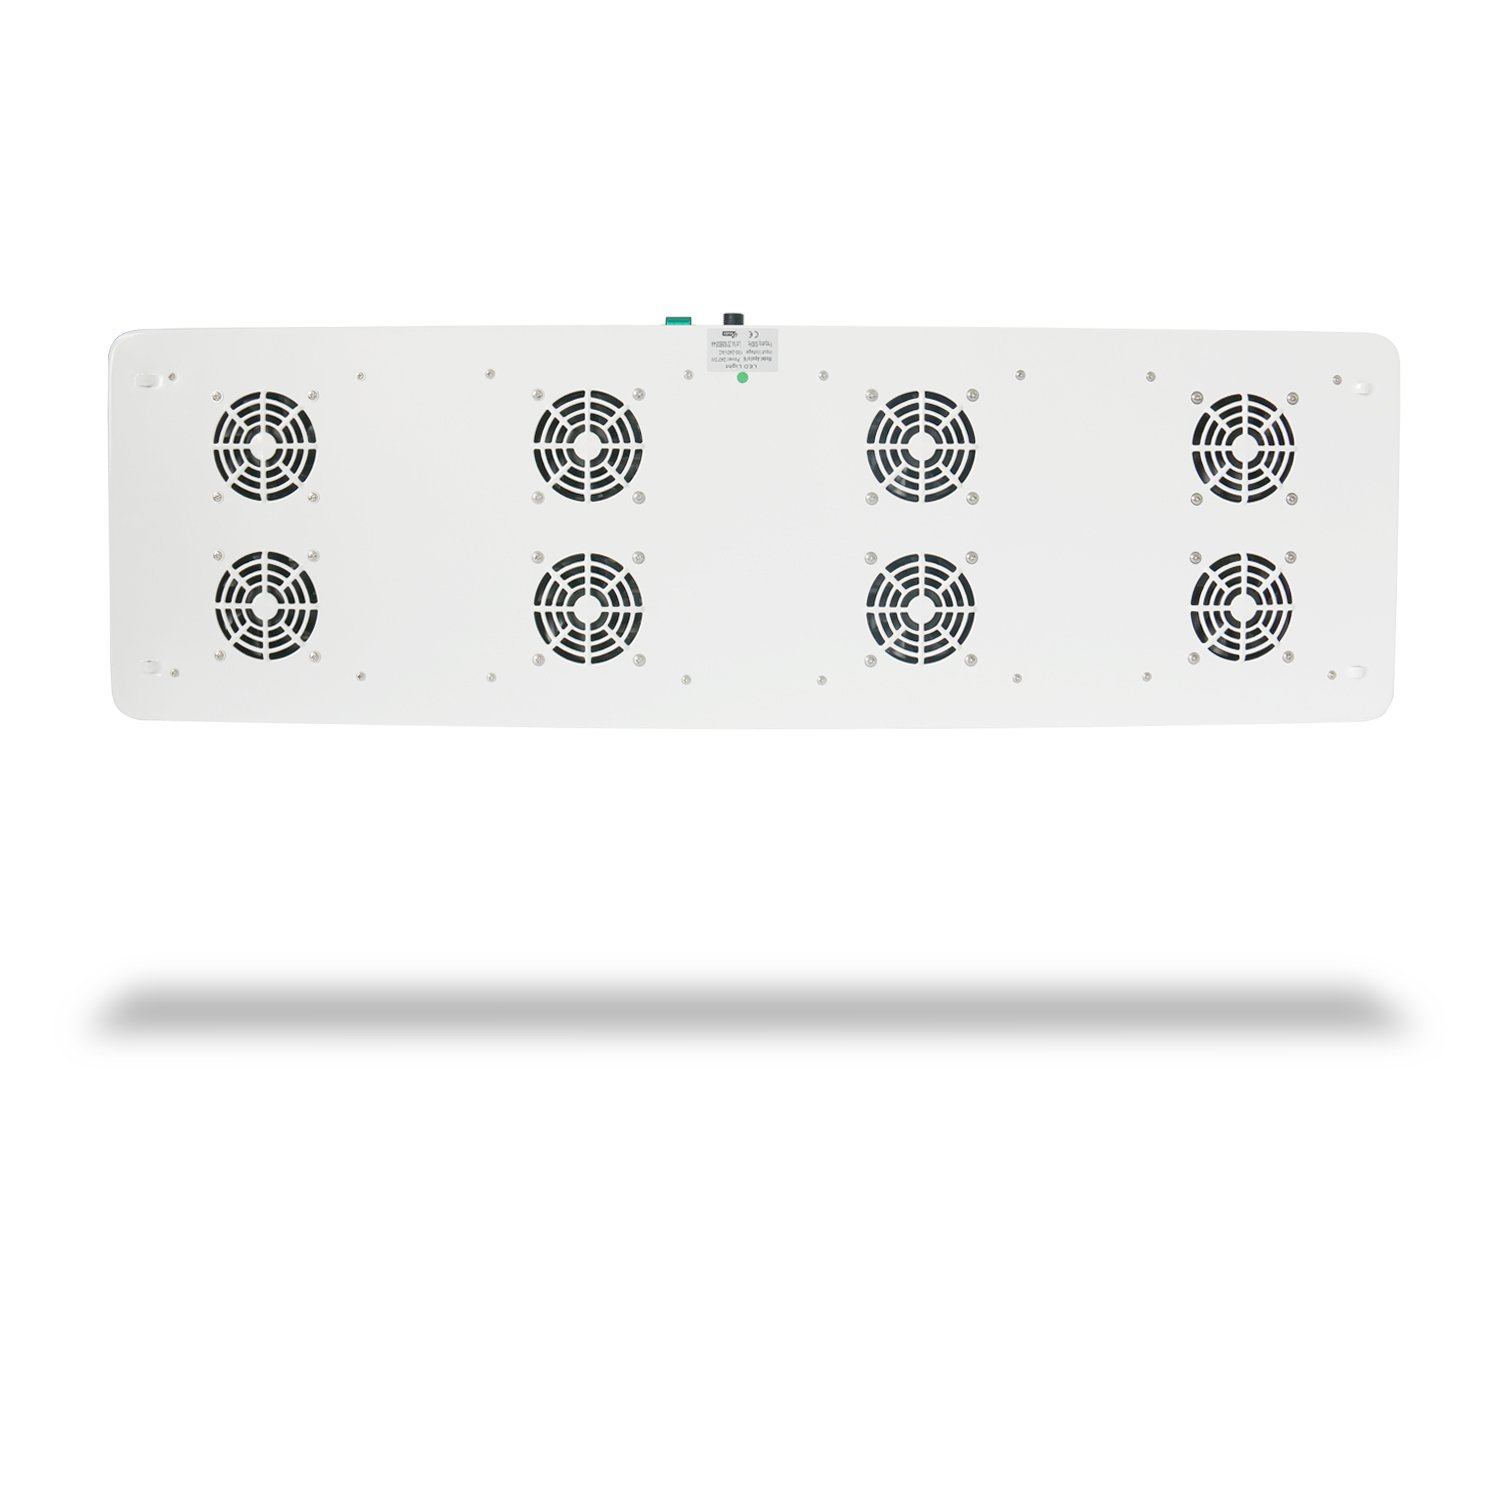 High Power Plant Grow Light, MAGZO A16 Full Spectrum LED Grow Lights with 3W Chips for Greenhouse Plants Marijuana Bonsai (MAGZO A16 550W) by MAGZO (Image #7)